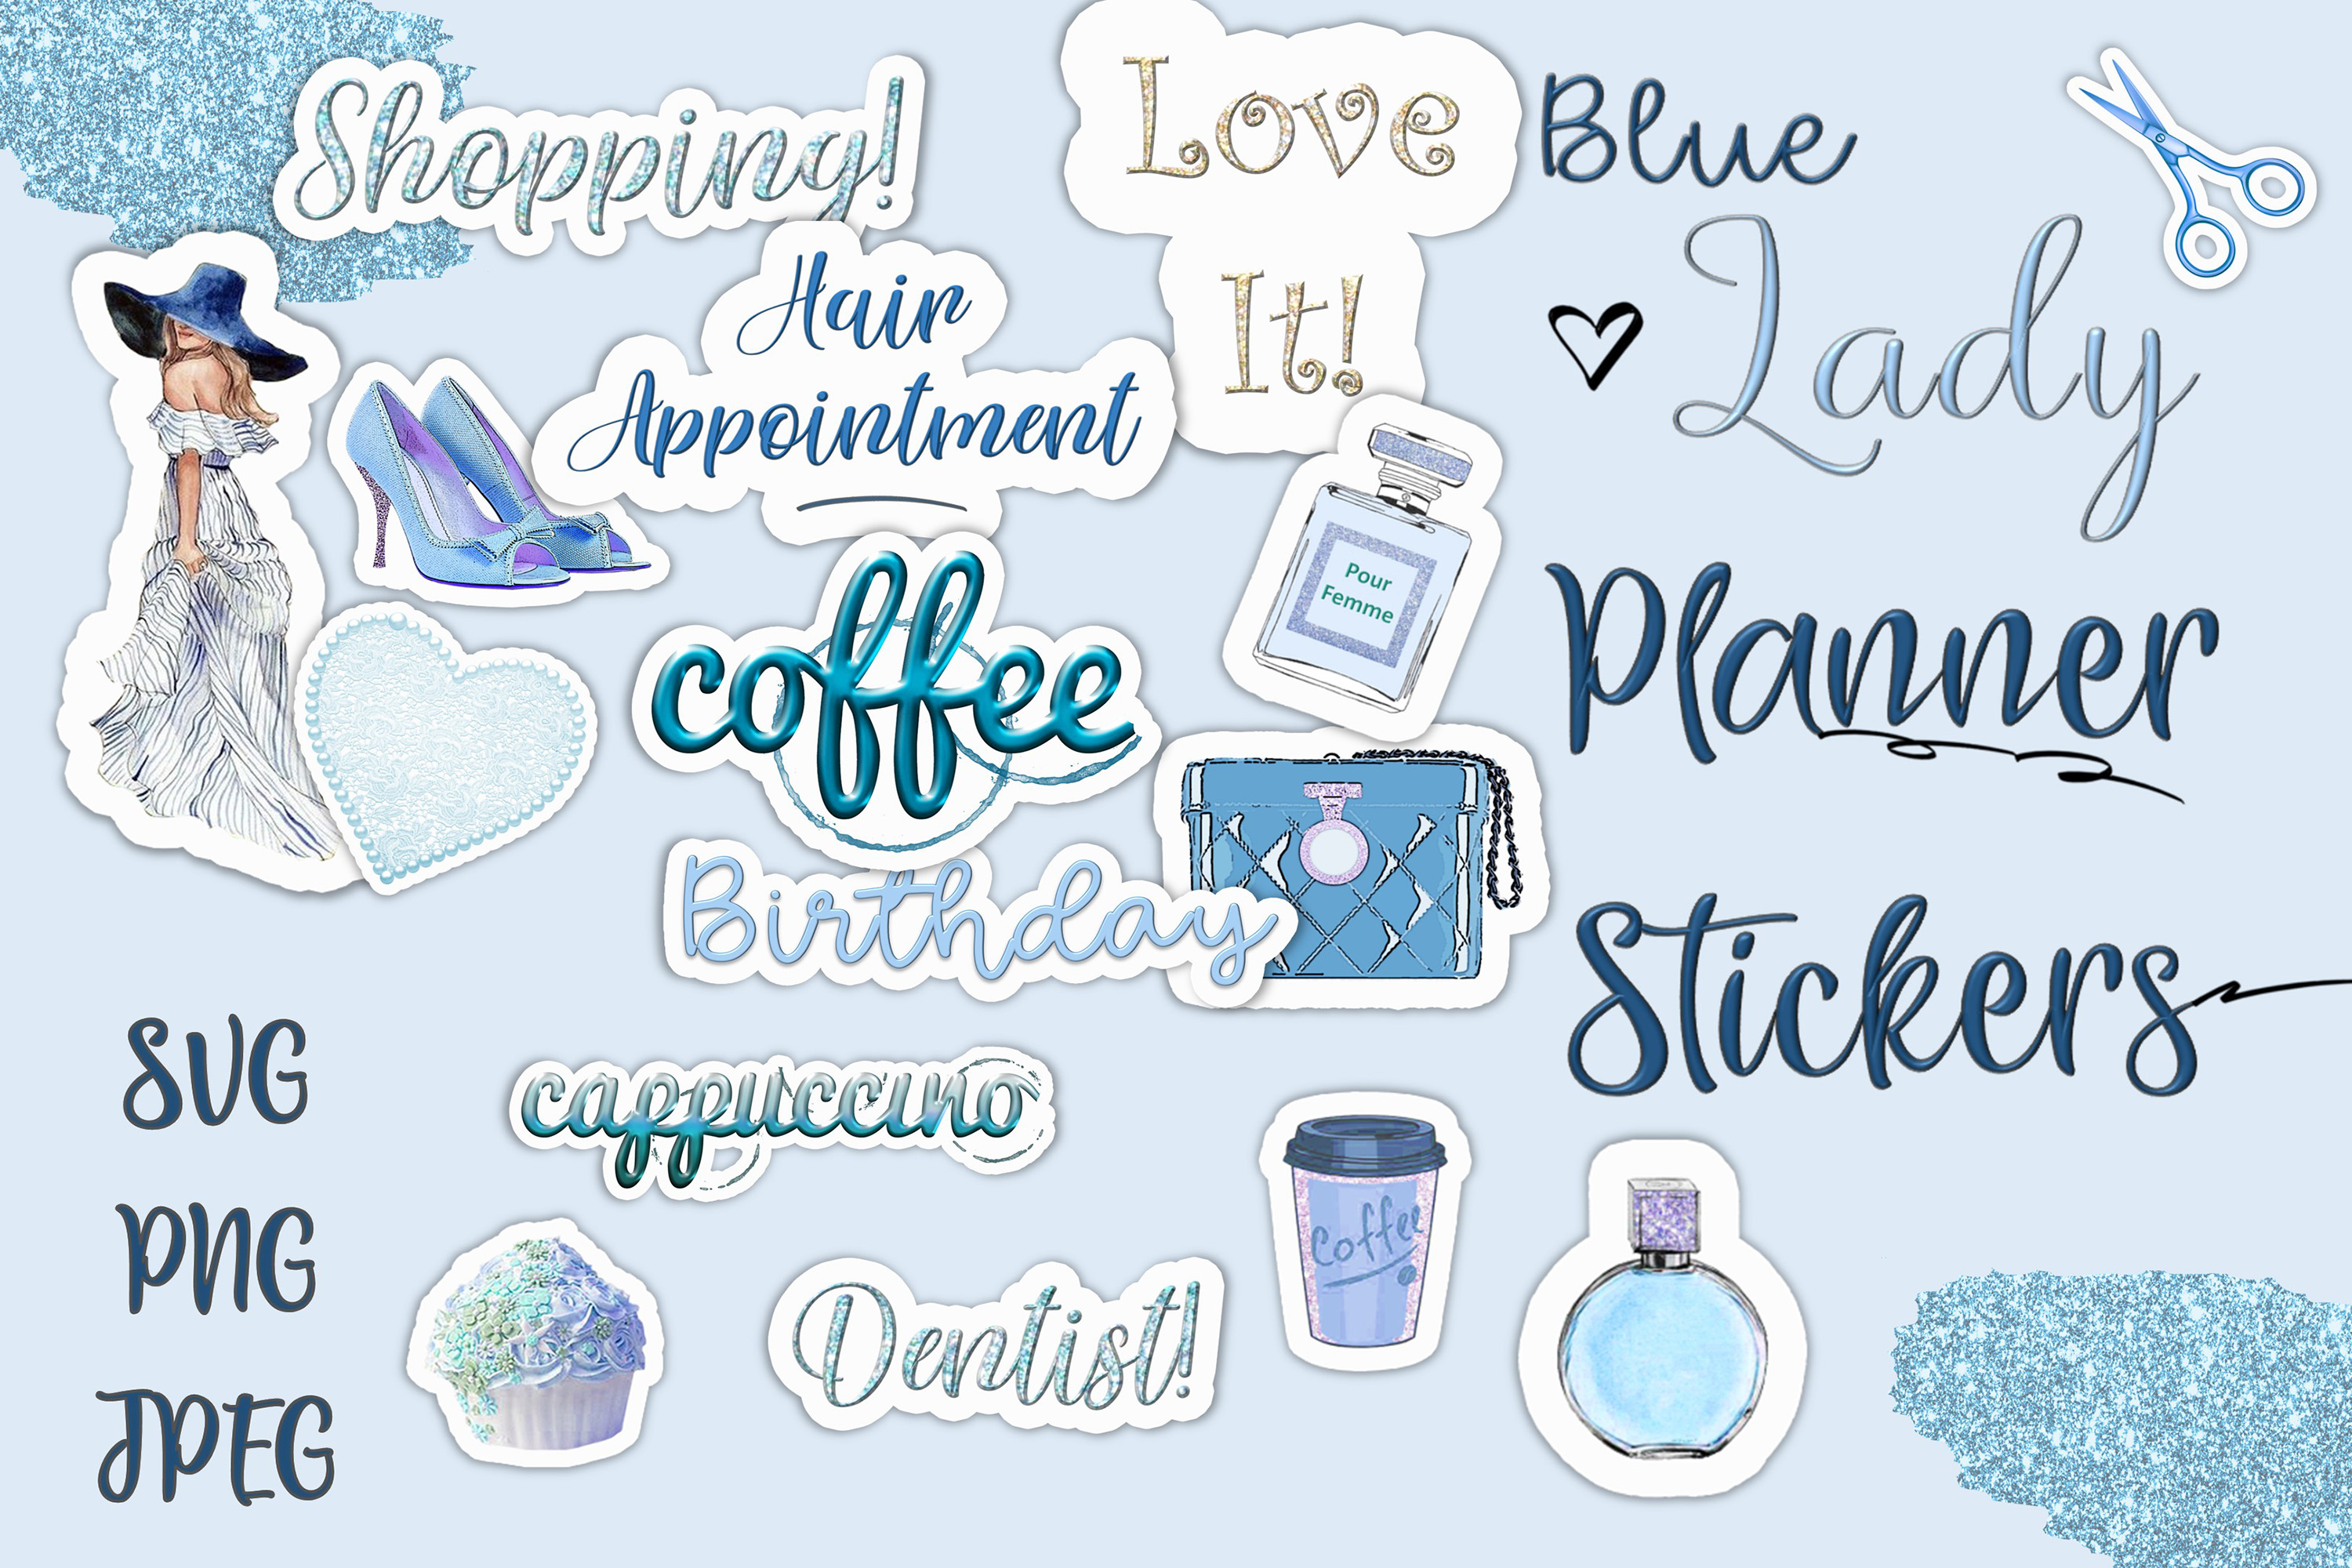 24 Planner Stickers SVG, PNG, EPS & DXF by Free SVG File